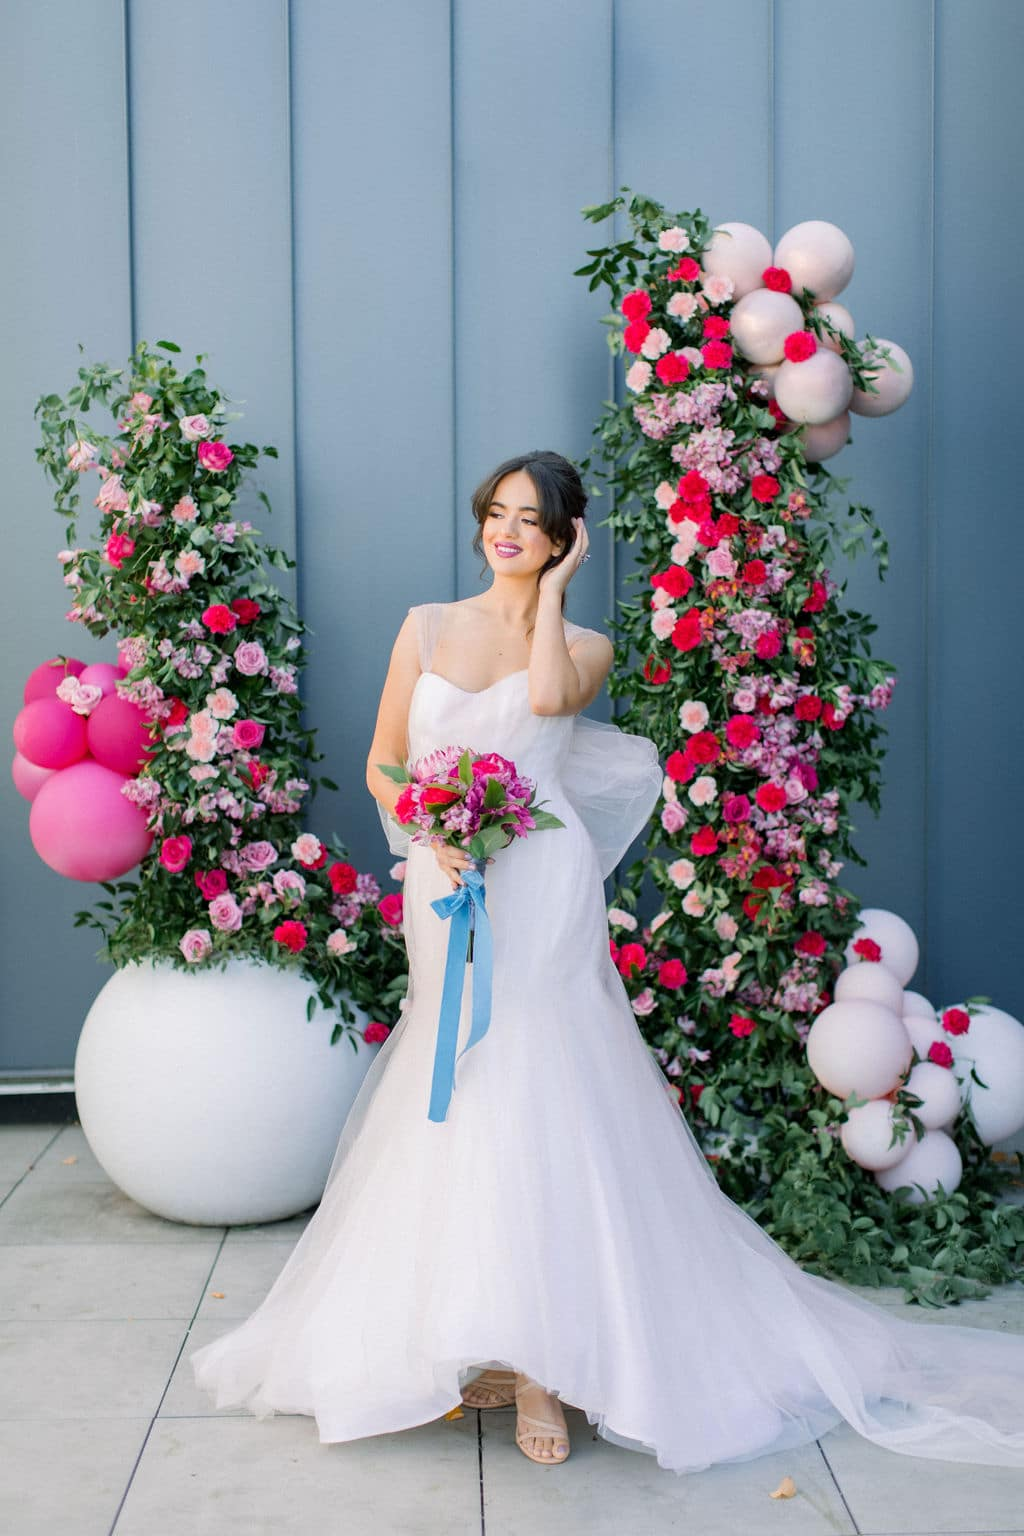 baloons and pink and purple flowers behind bride in mermaid gown